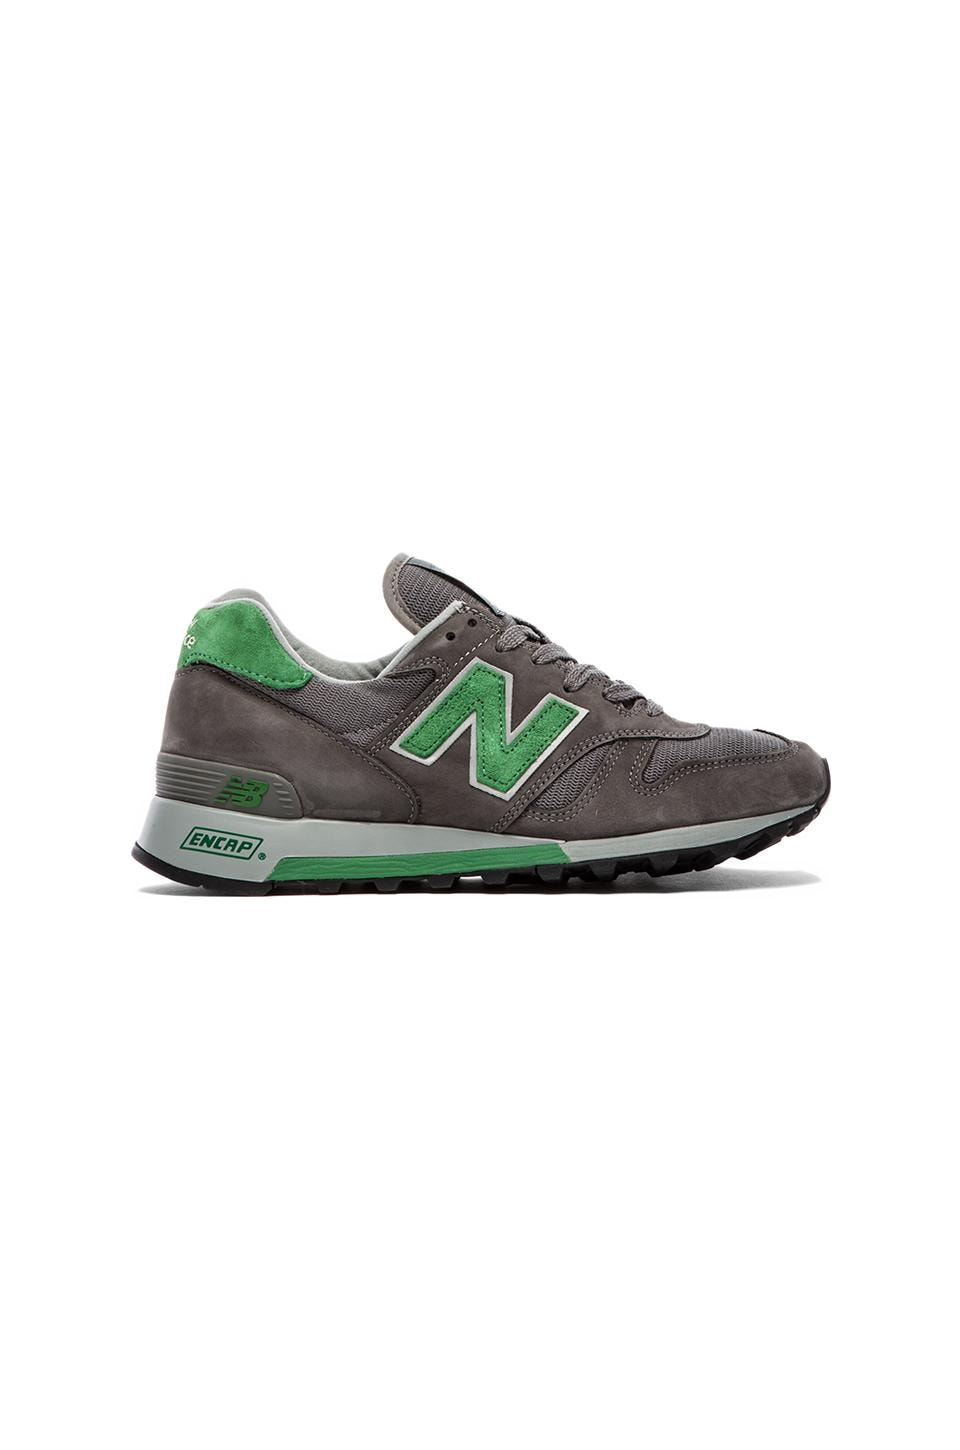 New Balance Made in the USA M1300 in Grey & Green